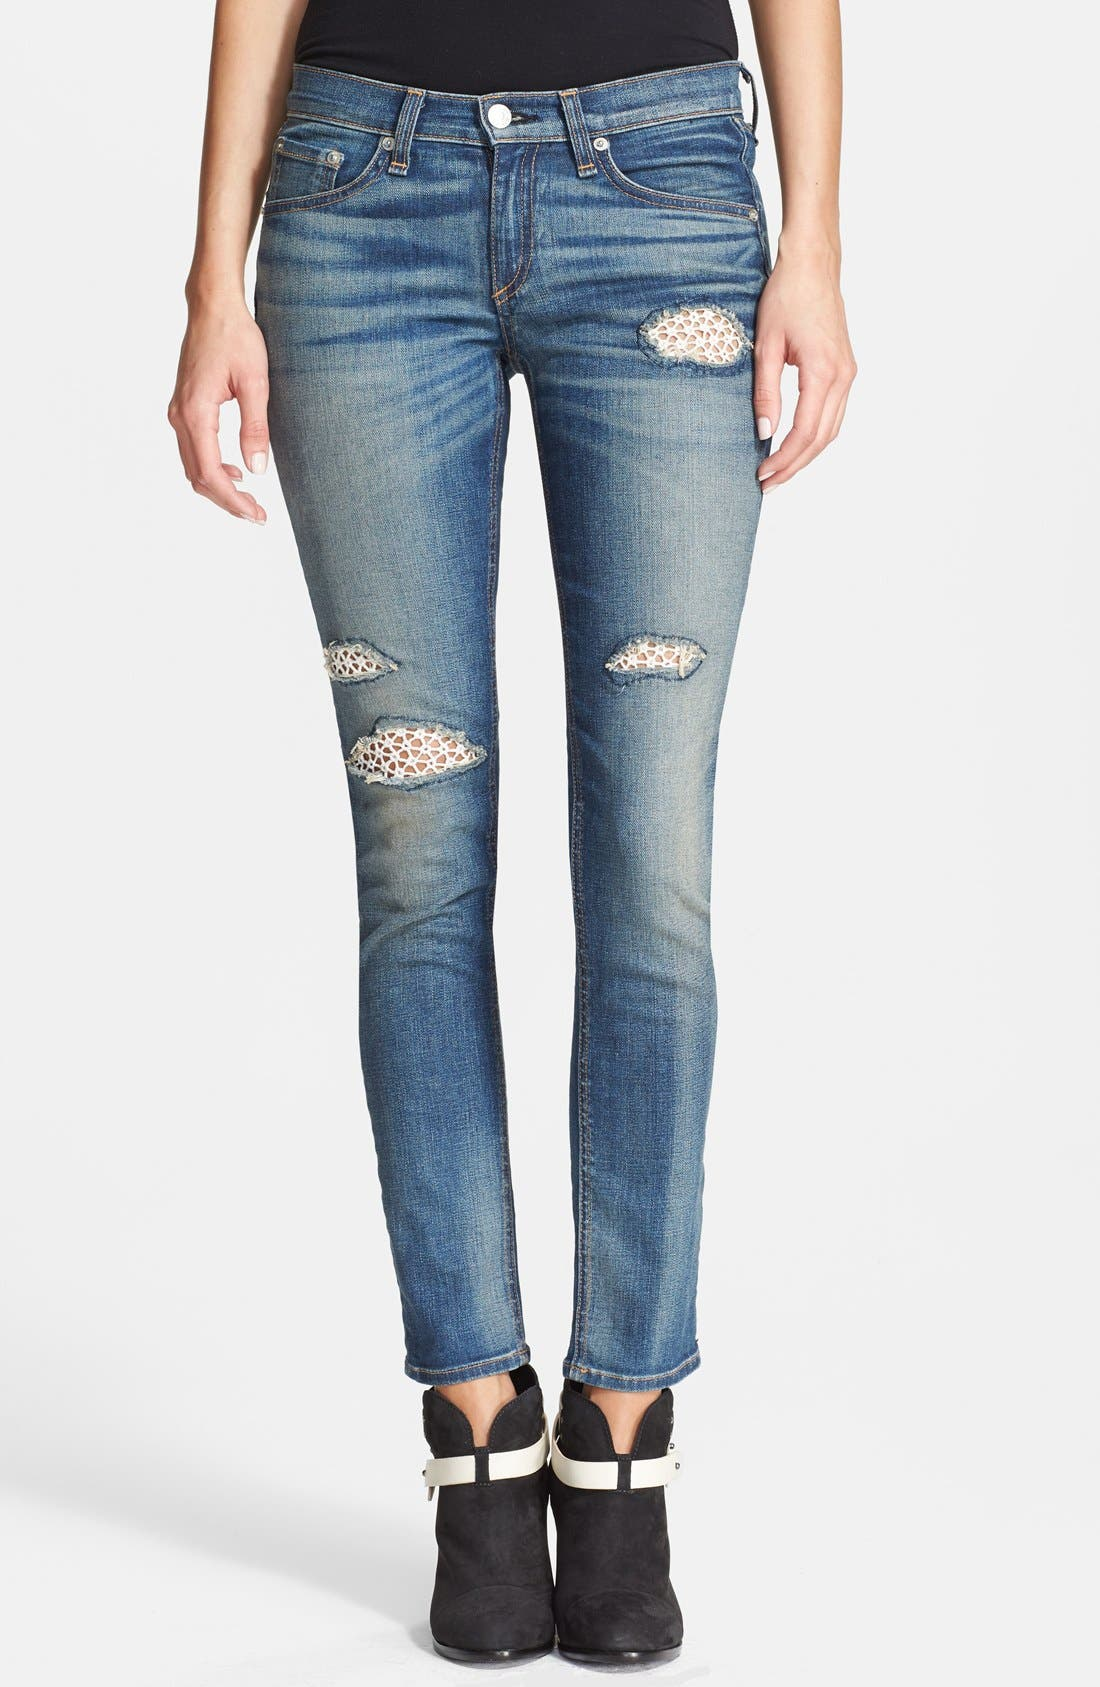 Main Image - rag & bone/JEAN Stretch Skinny Jeans (Crochet Lace)